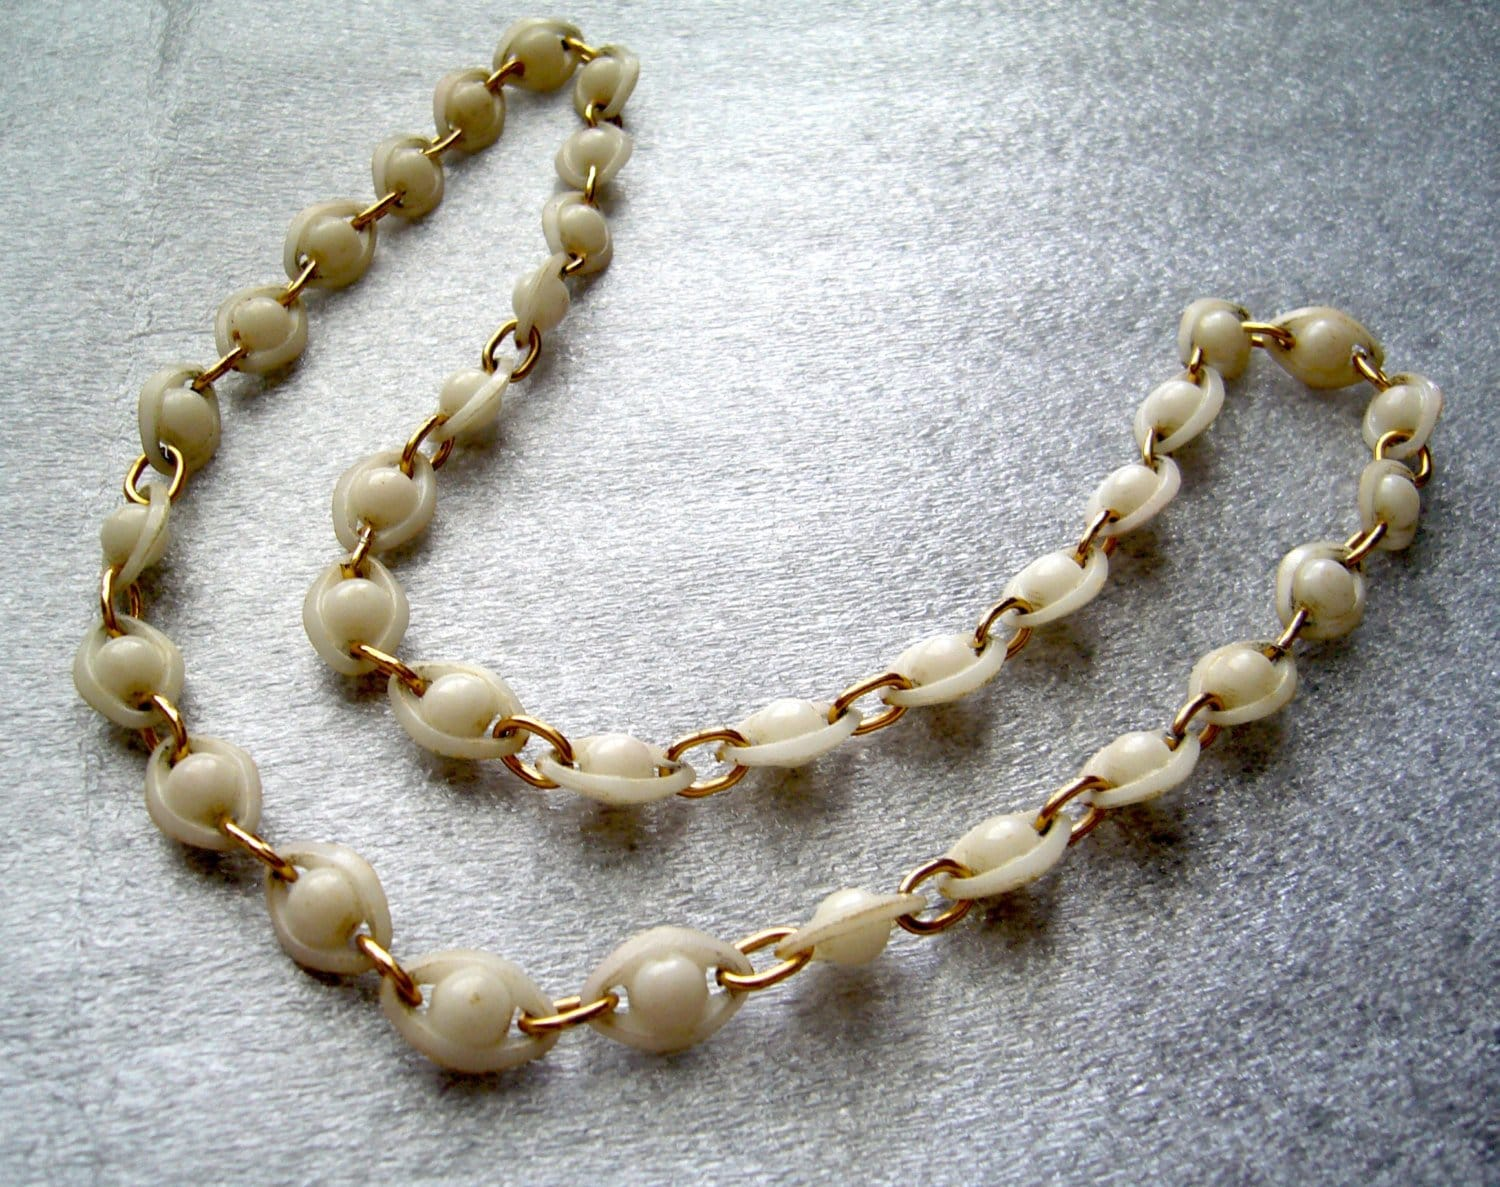 Vintage delicate white molded celluloid necklace